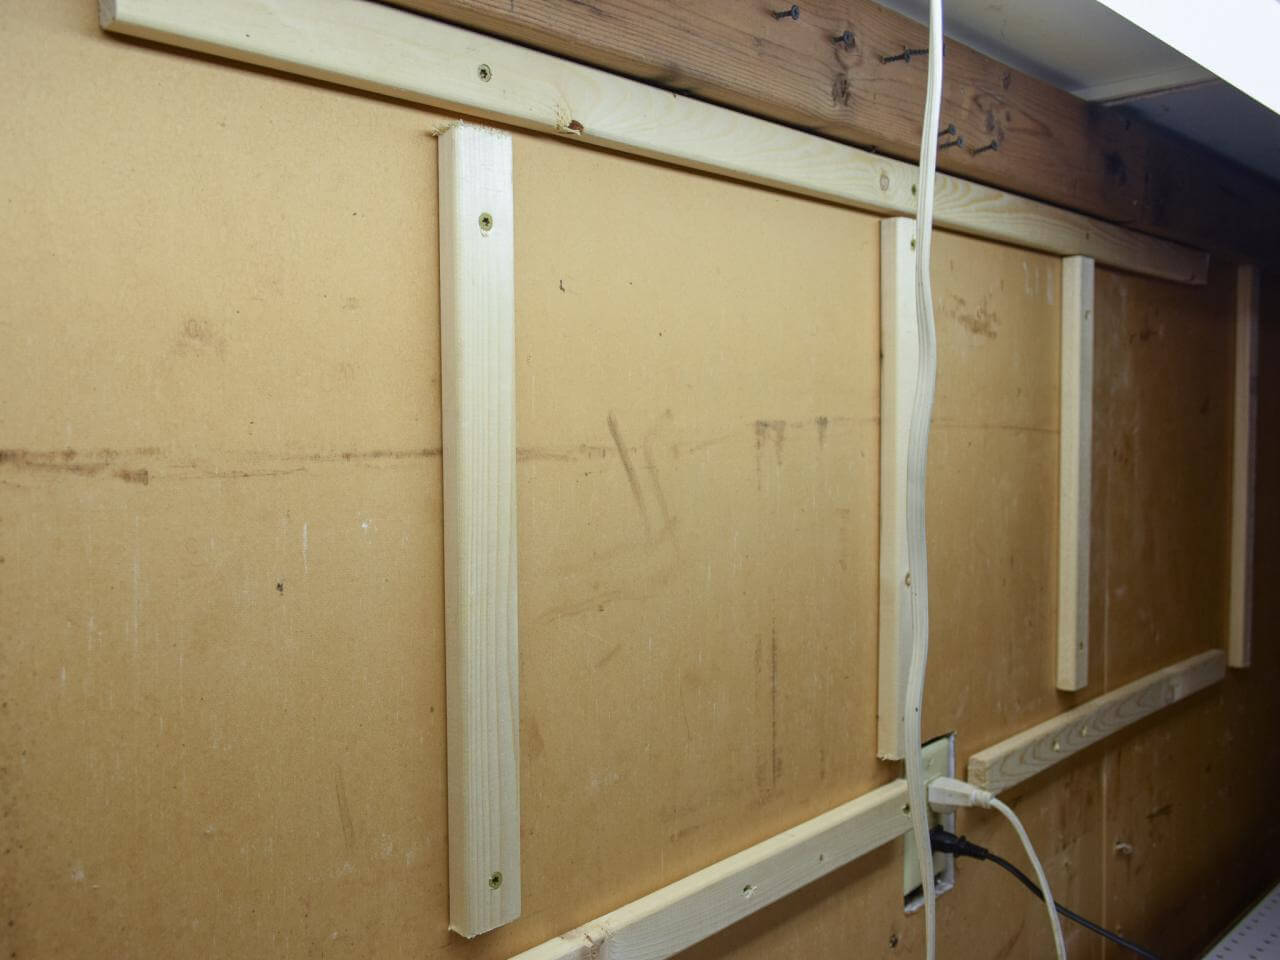 HOW TO BUILD WALL MOUNTED GARAGE SHELVES. 4. INSTALL THE SUPPORTING BOARDS